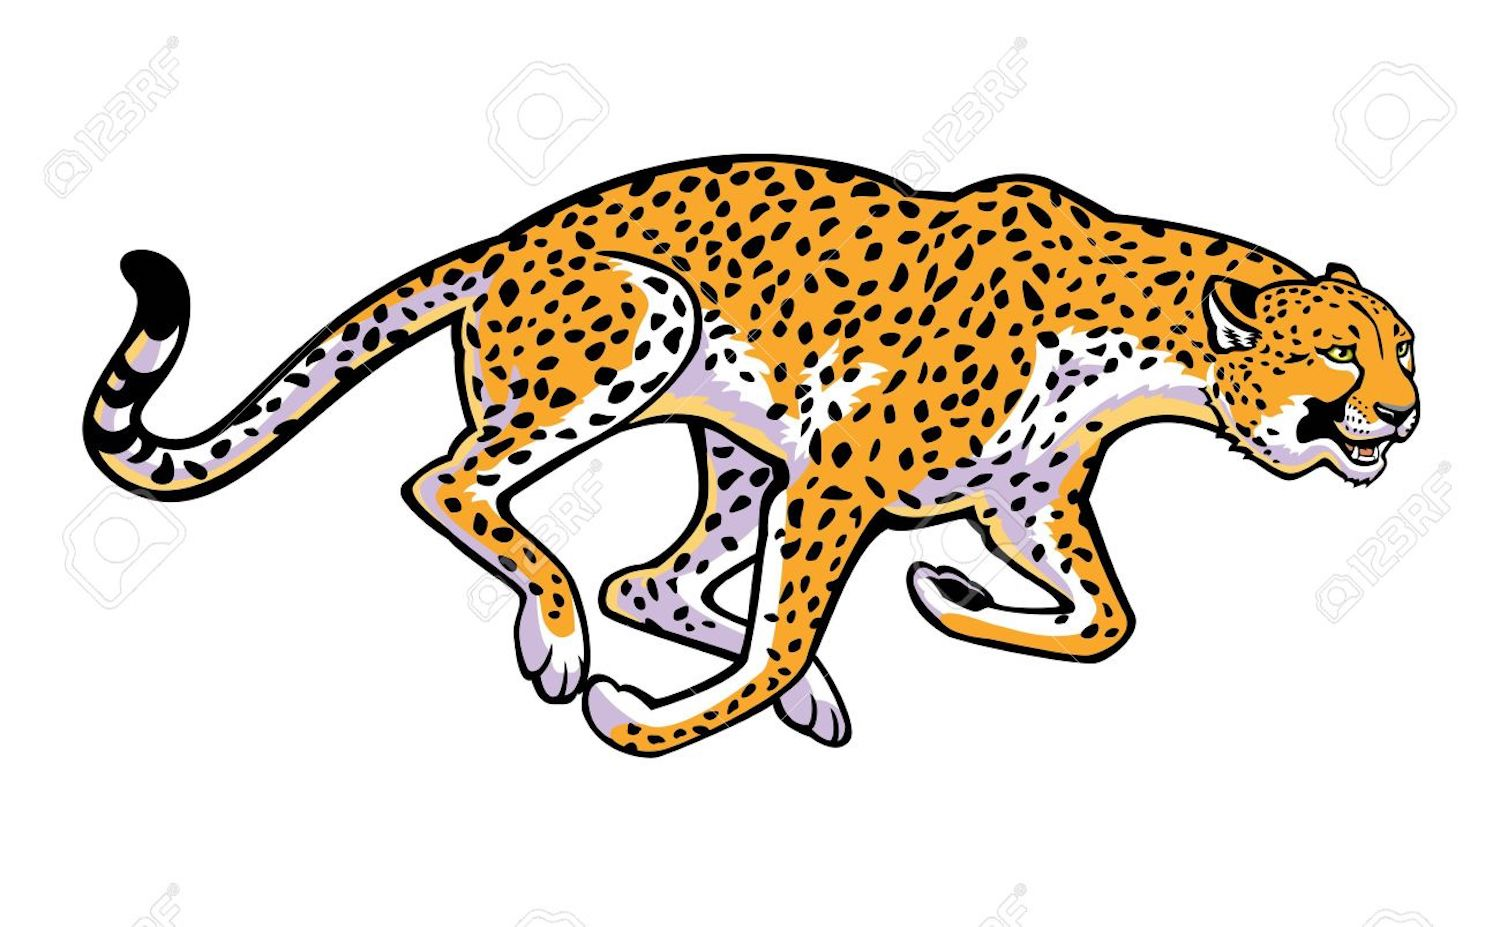 Cheetah Clipart, Colorings, And Other Free Printable Design.